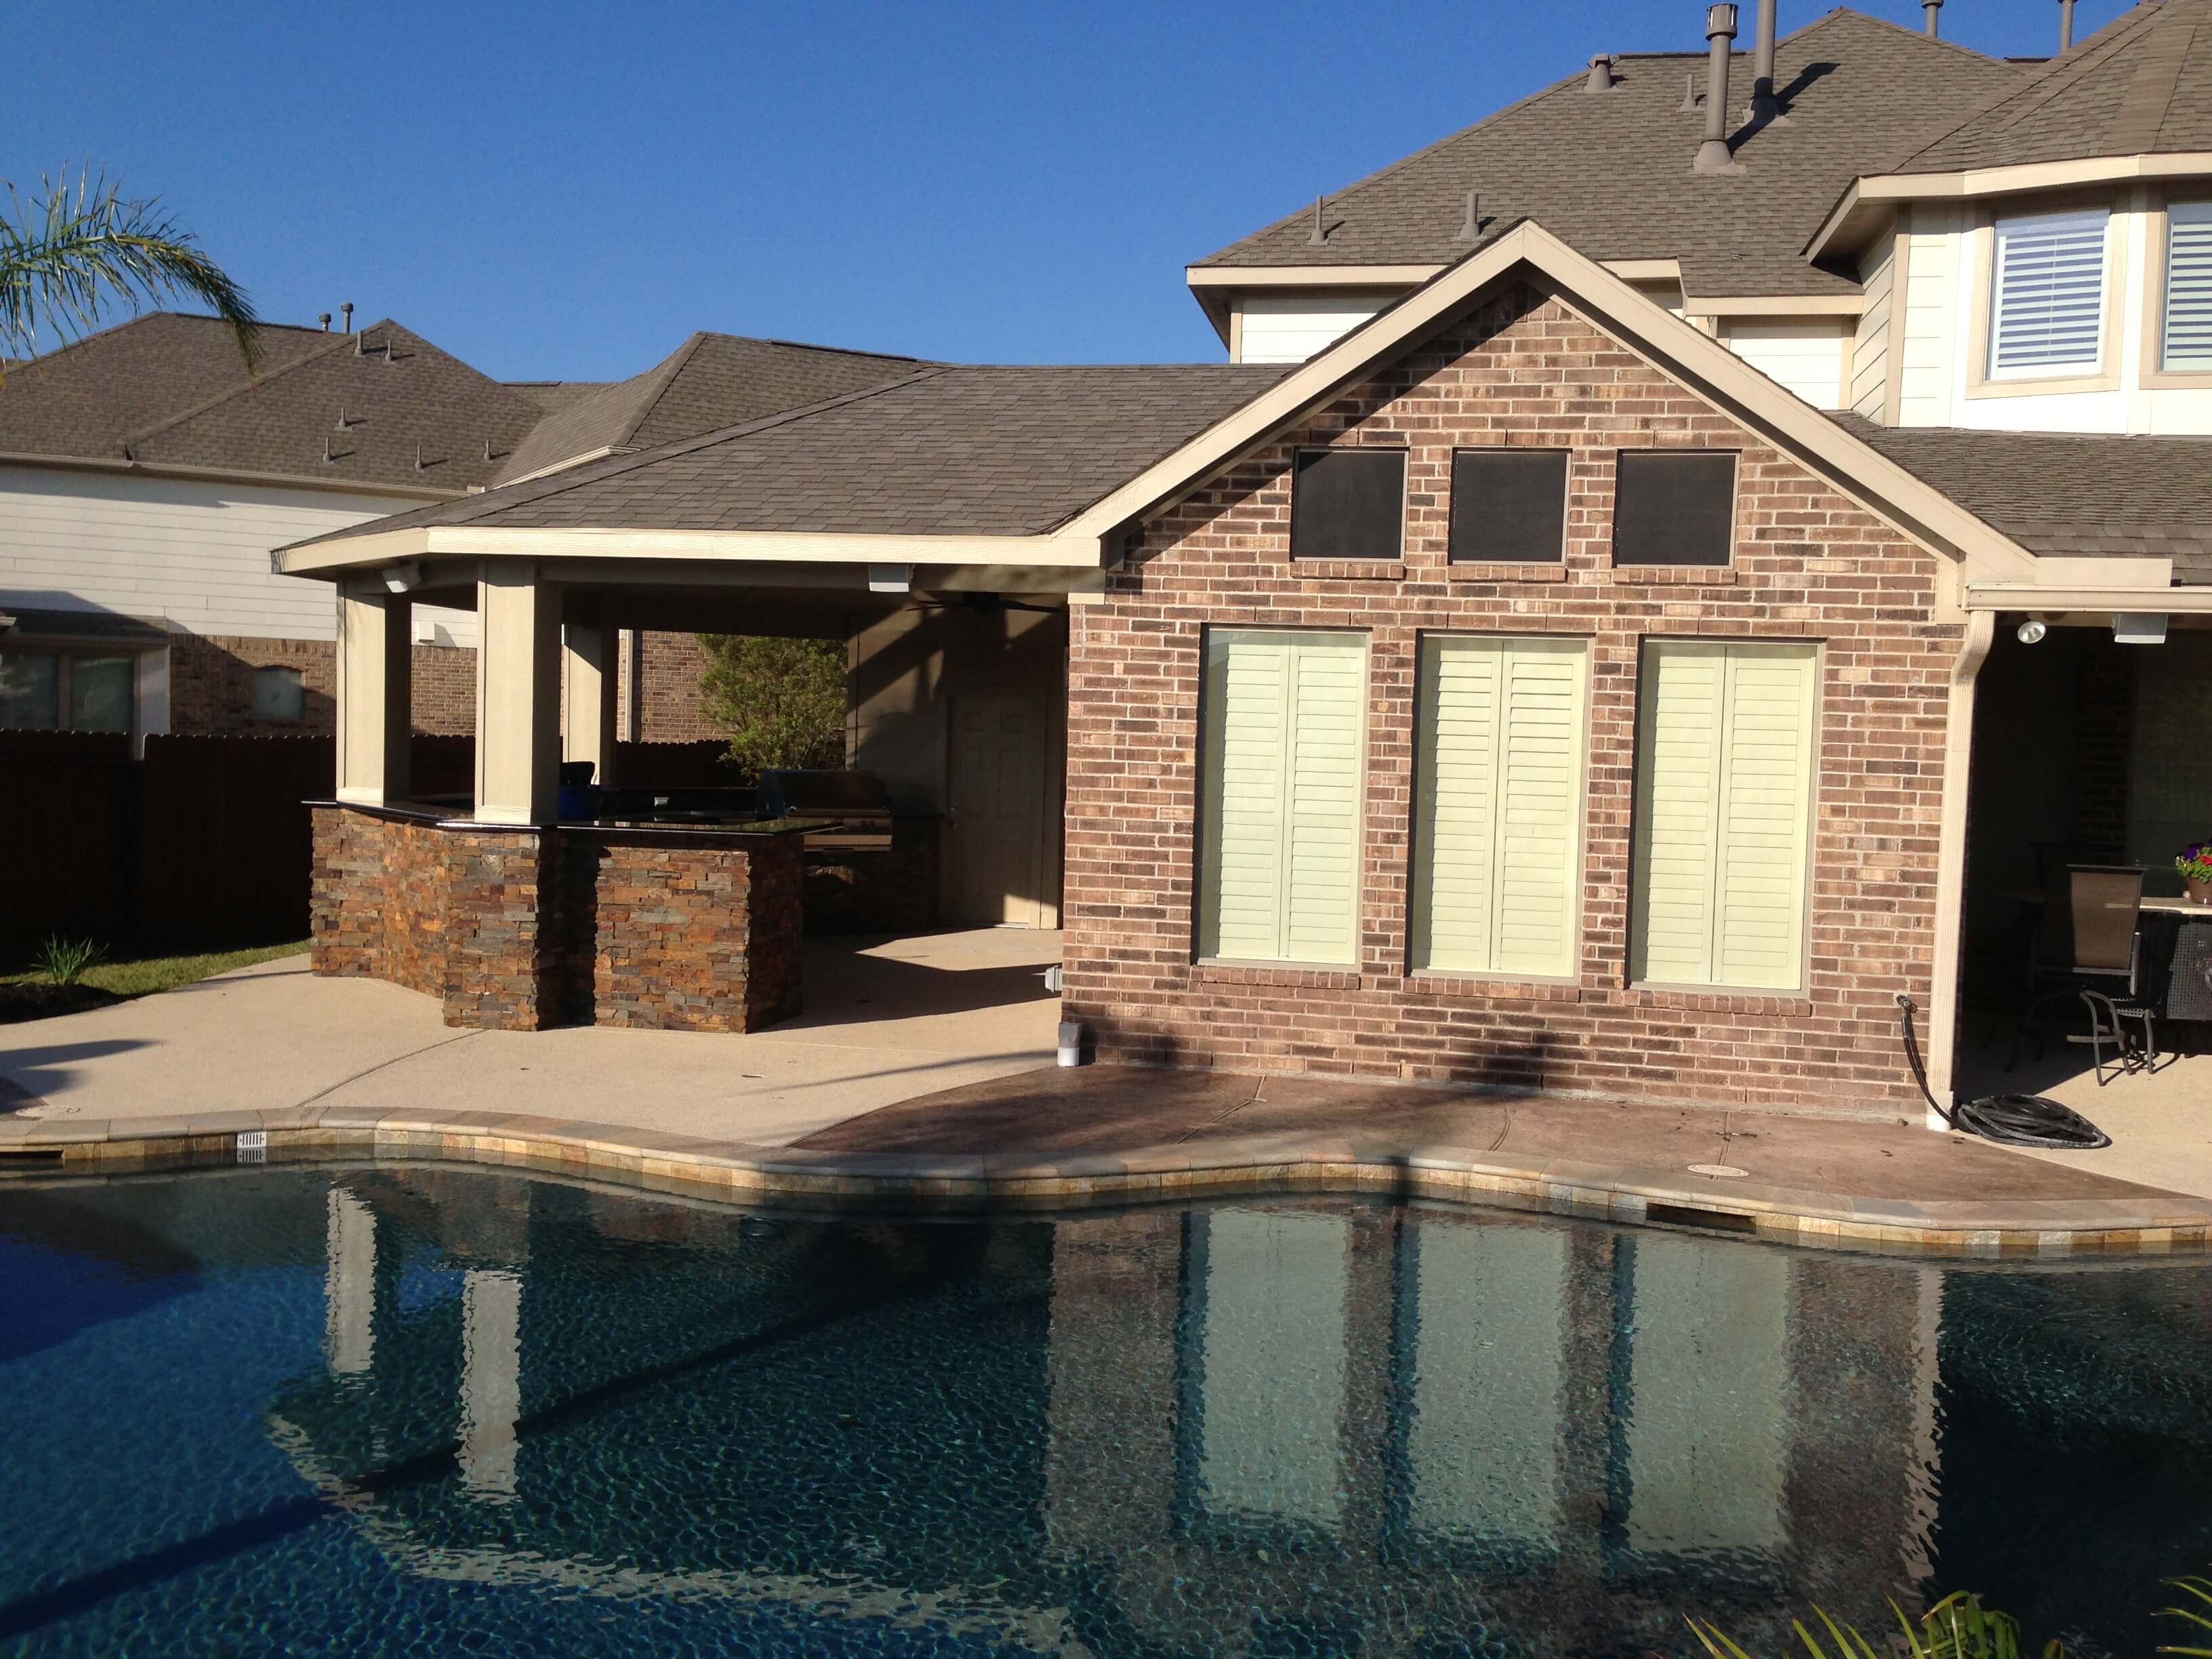 Pearland Outdoor Living Photos | League City Pool Builder on Outdoor Kitchen With Covered Patio id=38719